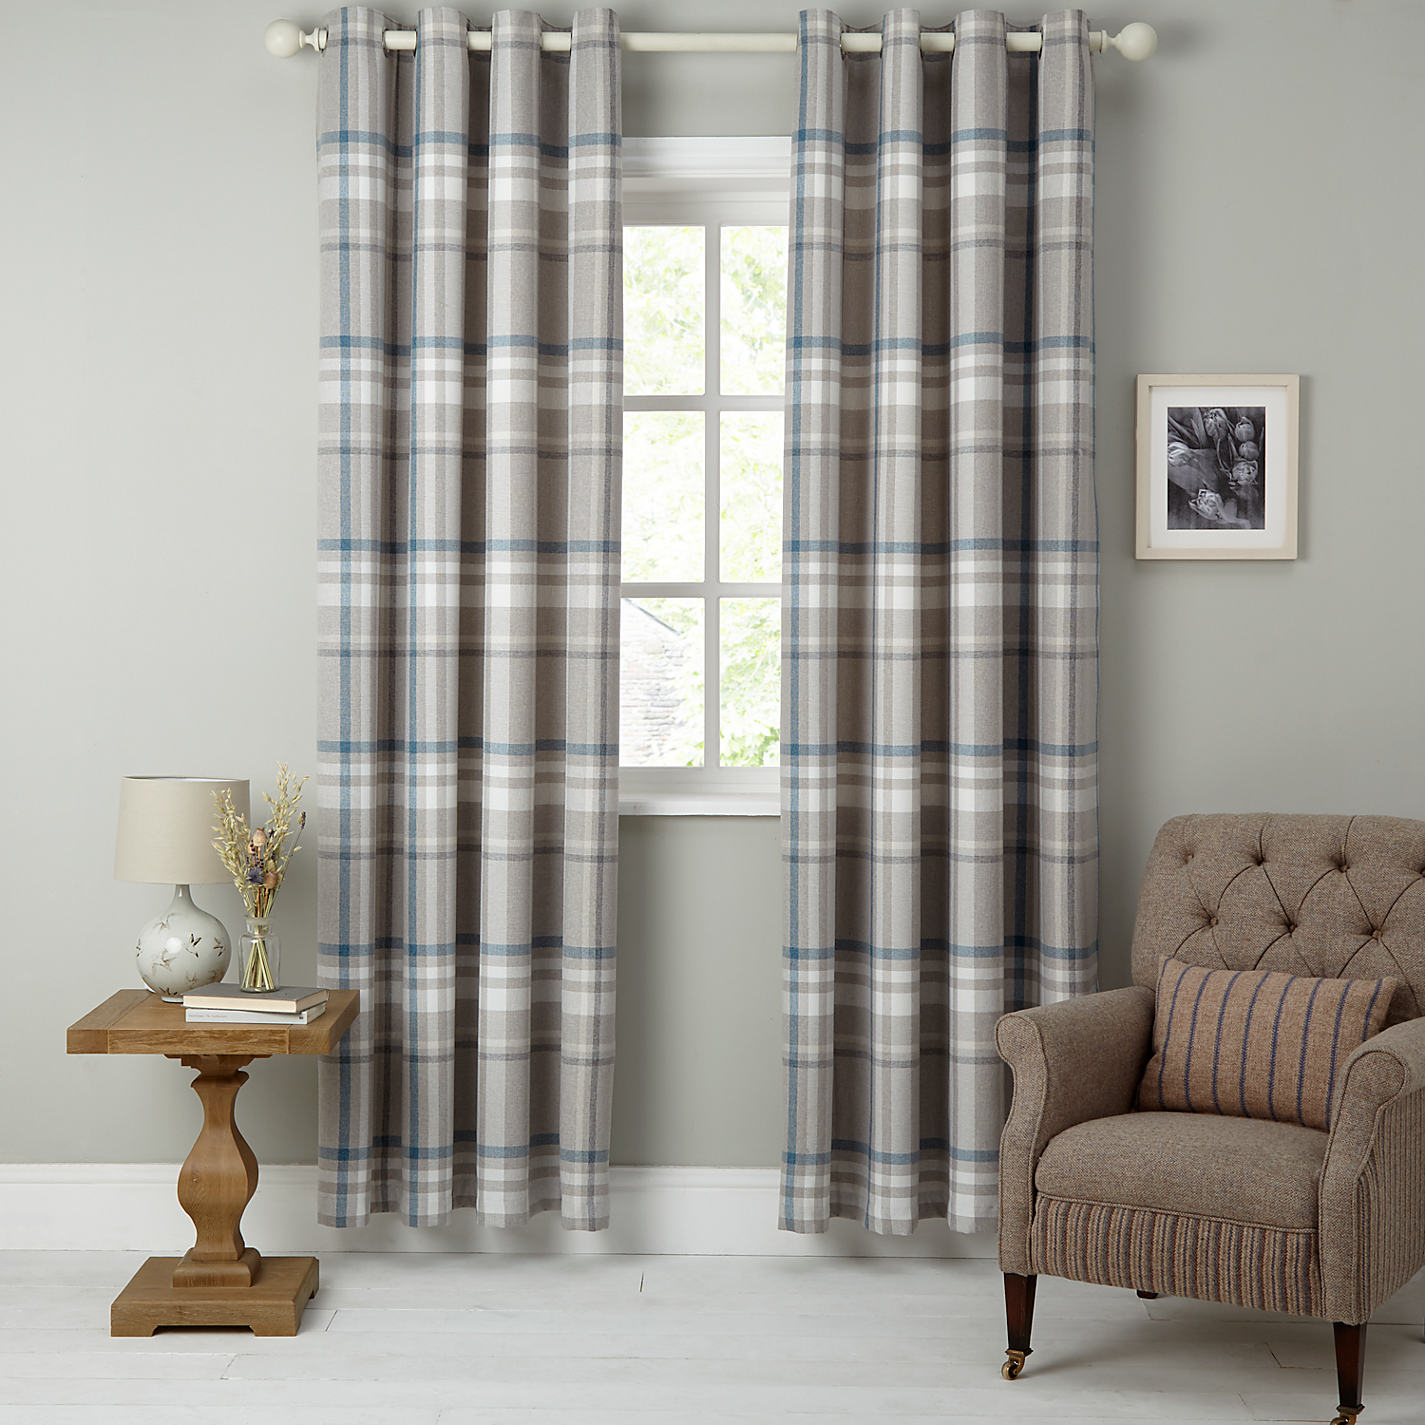 Buy John Lewis Darcey Check Lined Eyelet Curtains John Lewis - John lewis curtains grey